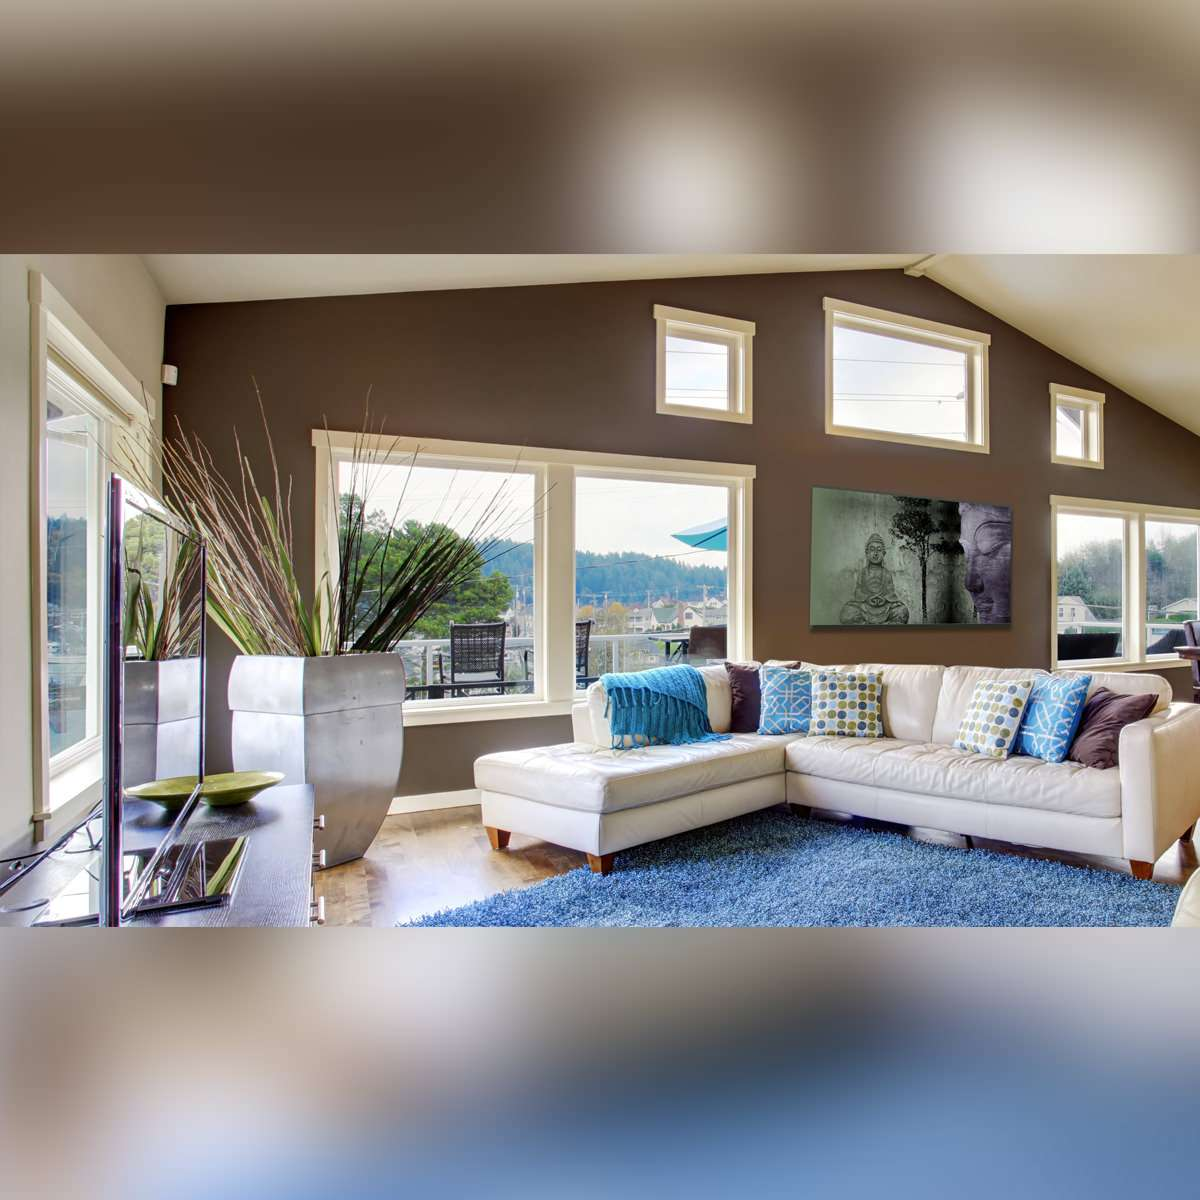 A bright living room with casement windows, a white couch, colored pillows, a blue rug, a tv and a big plant.